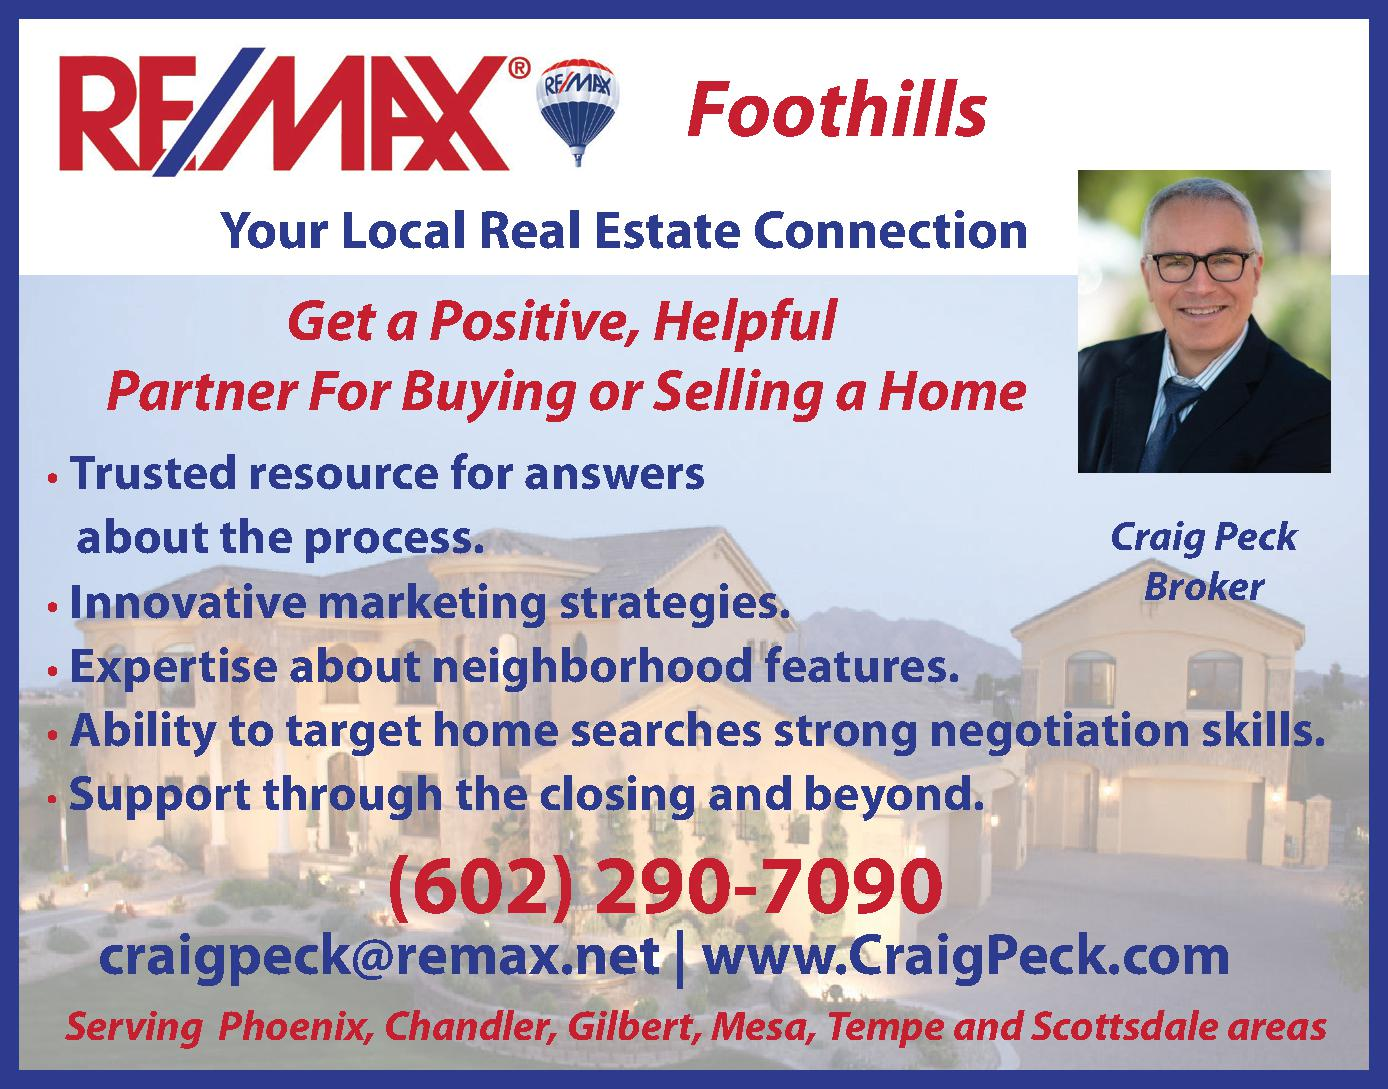 RE/MAX Foothills - Peck